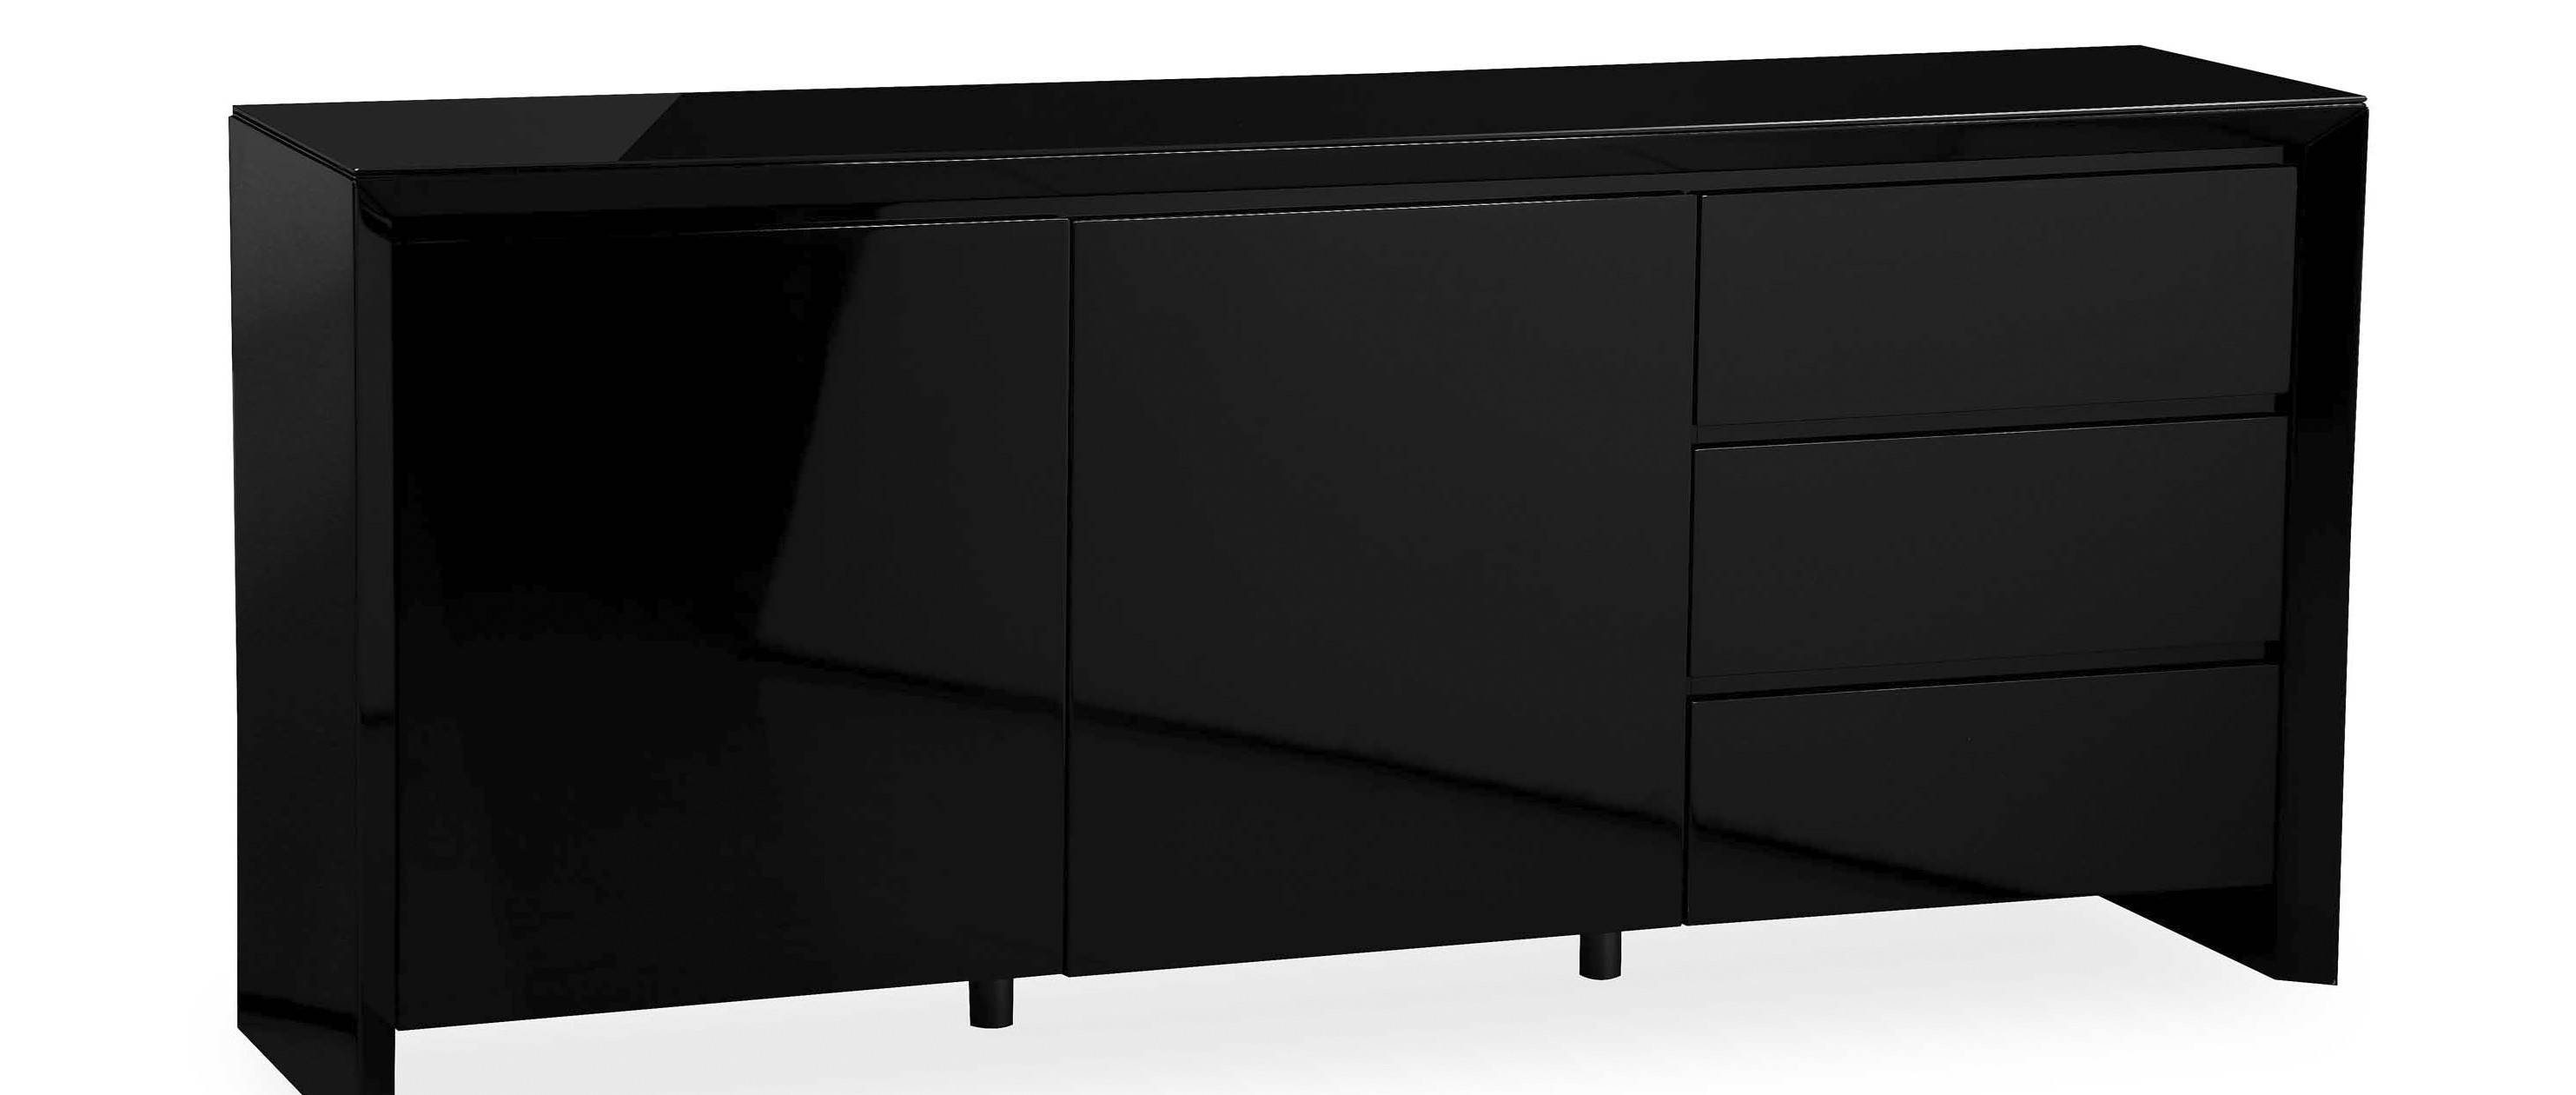 Soho - Extra Large Sideboard - Black High Gloss regarding Ready Assembled Sideboards (Image 29 of 30)